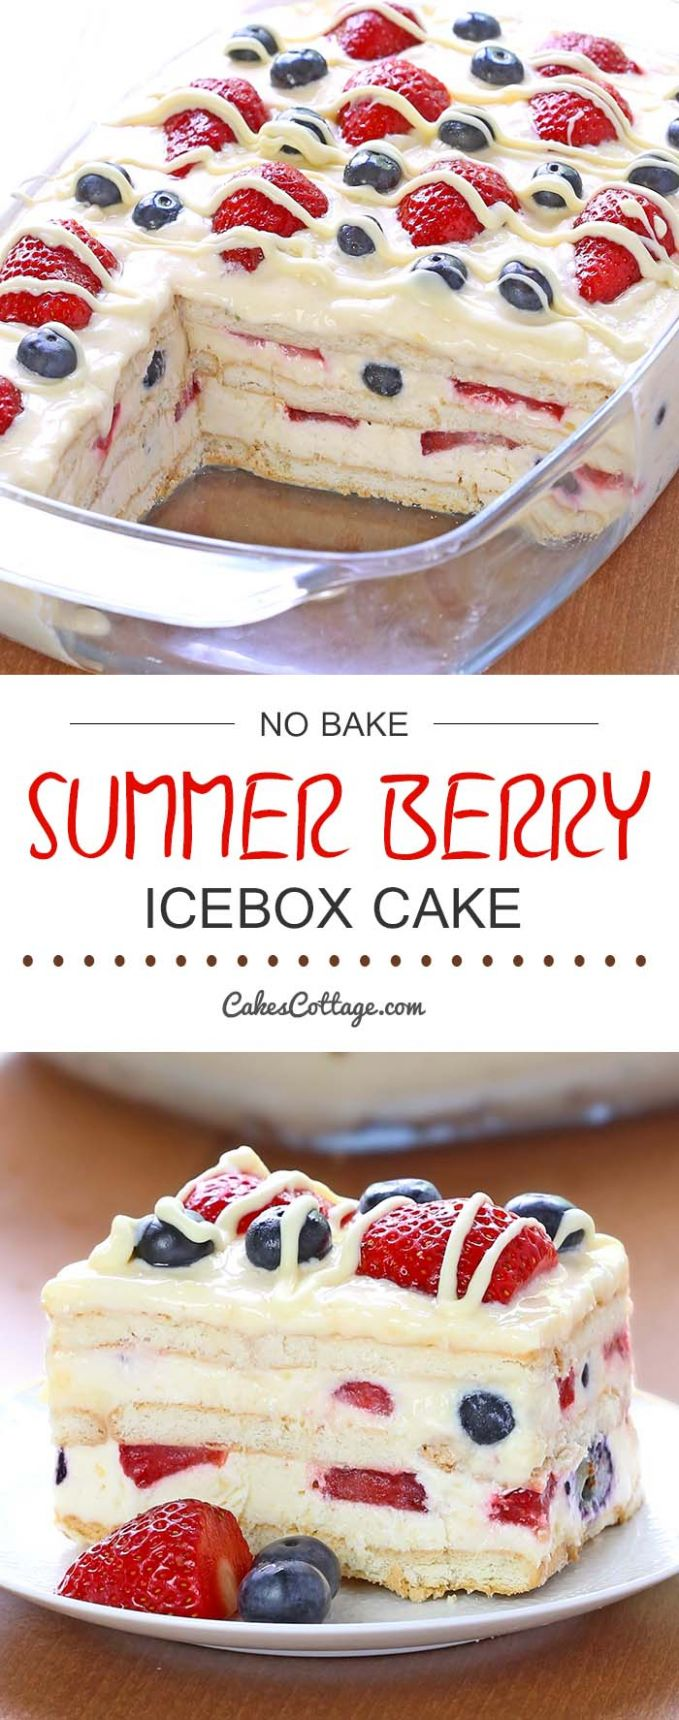 No Bake Summer Berry Icebox Cake - Recipes For Quick Summer Desserts